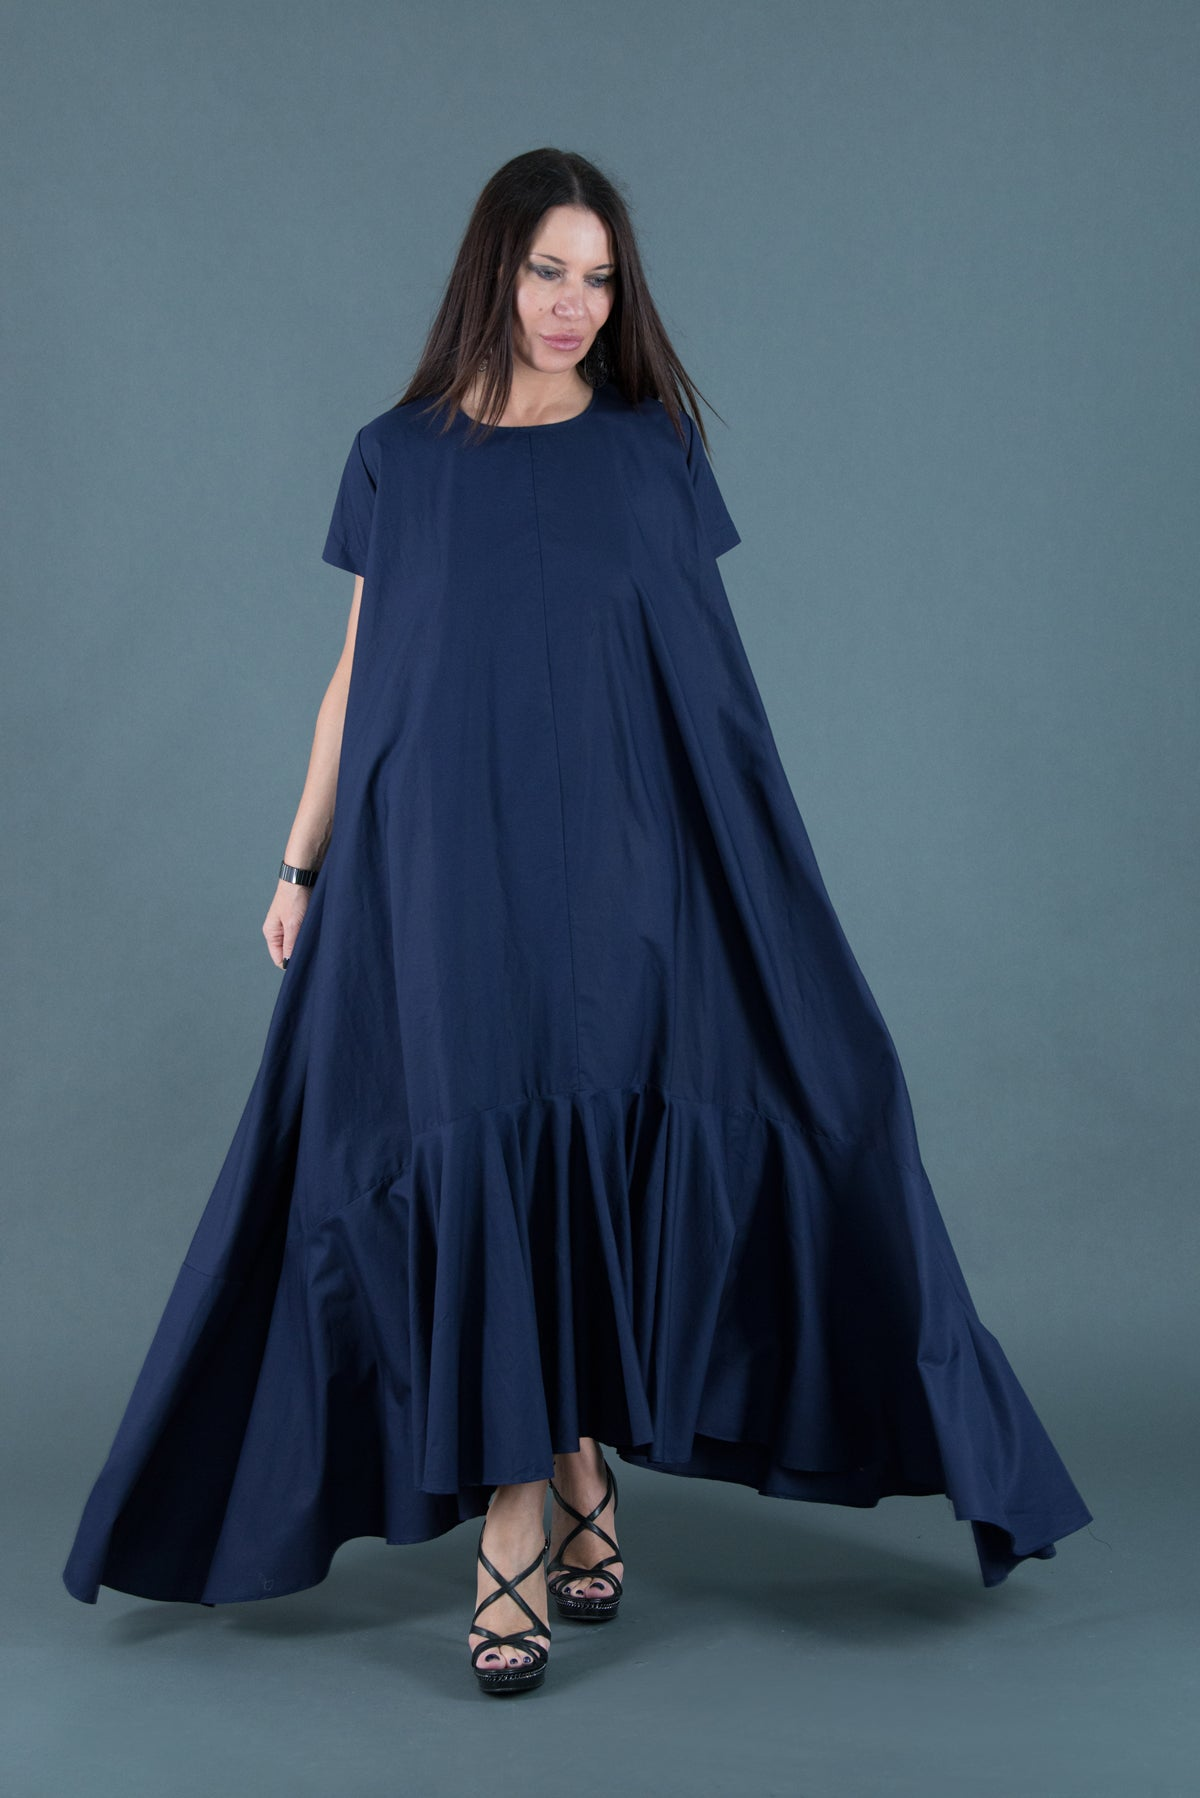 Dark Blue Cotton Dress, Summer Flounces Dress, Cotton Party Dress